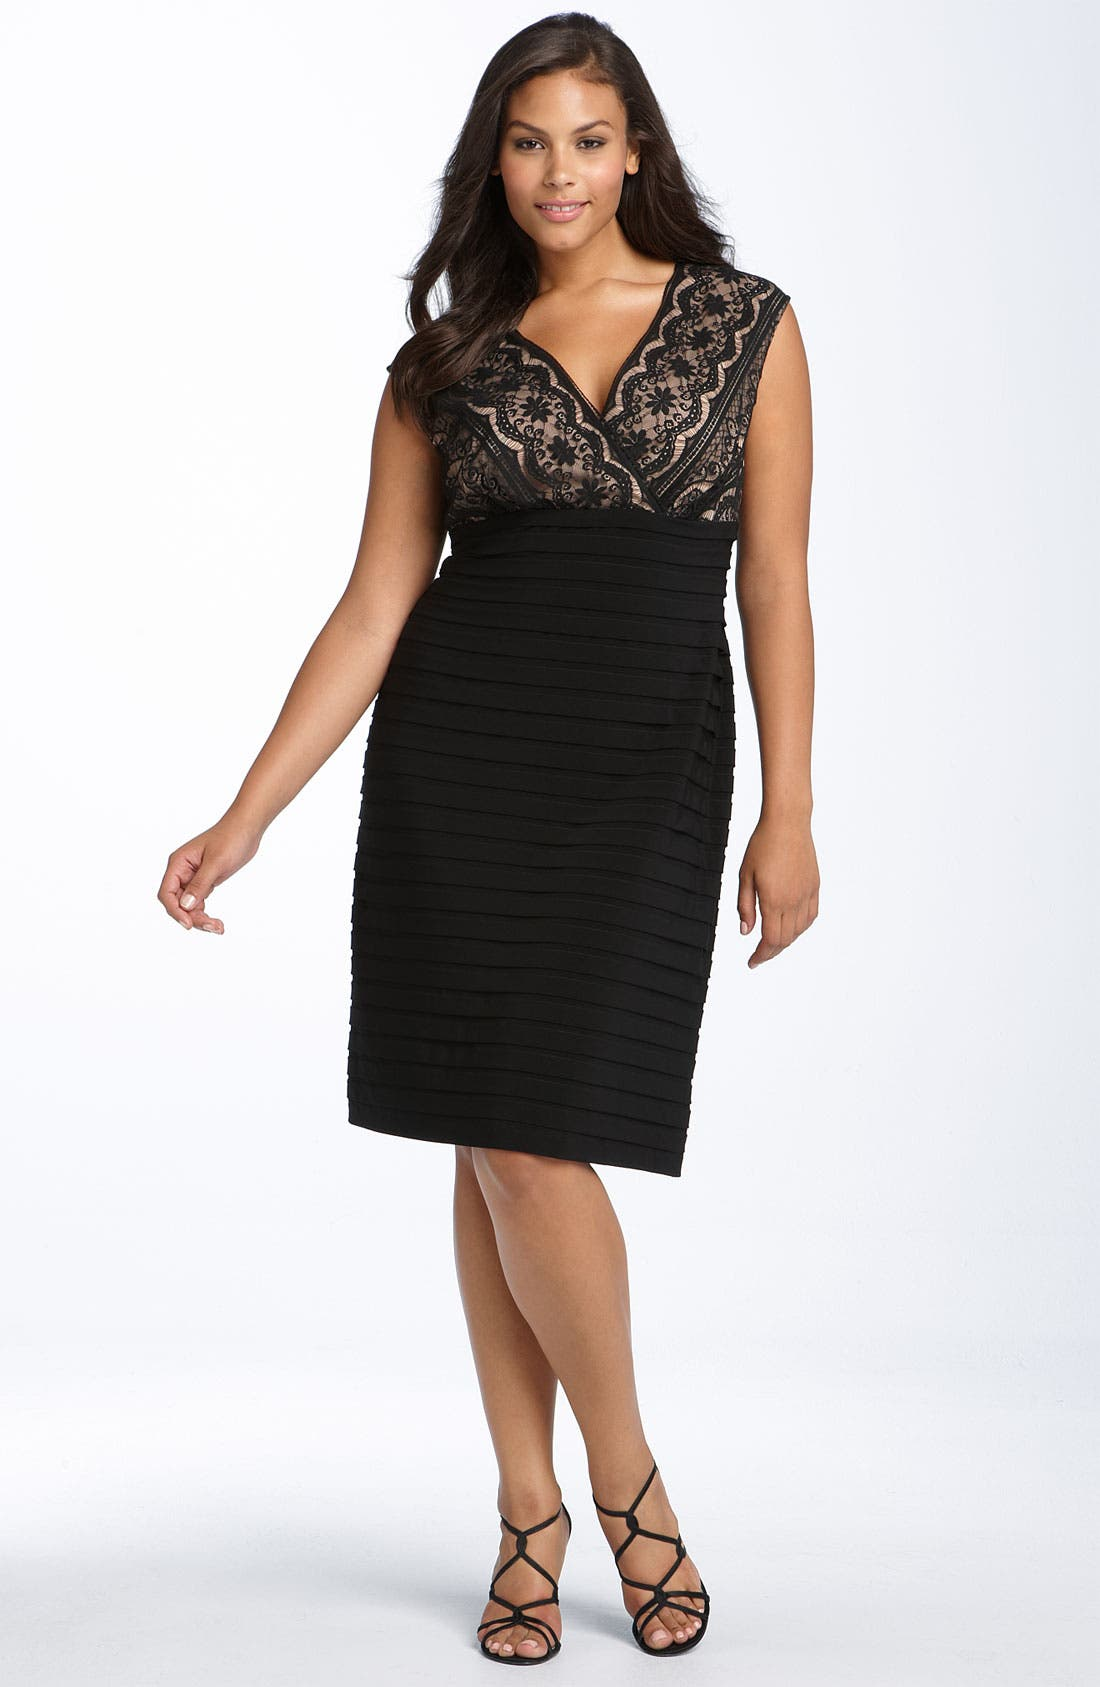 Alternate Image 1 Selected - Adrianna Papell Lace Bodice Banded Dress (Plus Size)